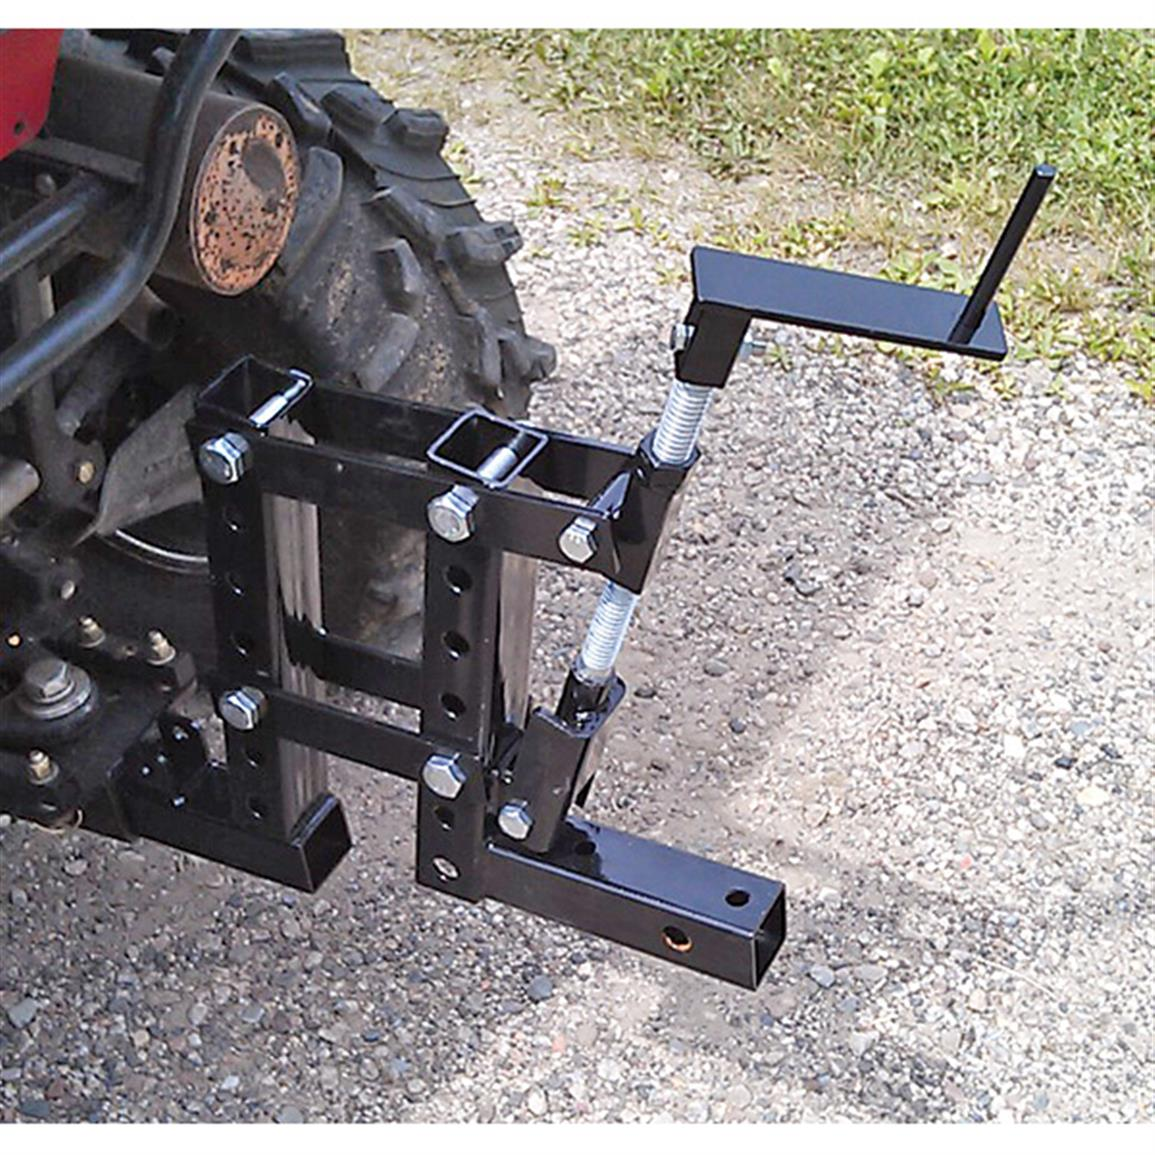 Hand crank allows for 10 inches of adjustment